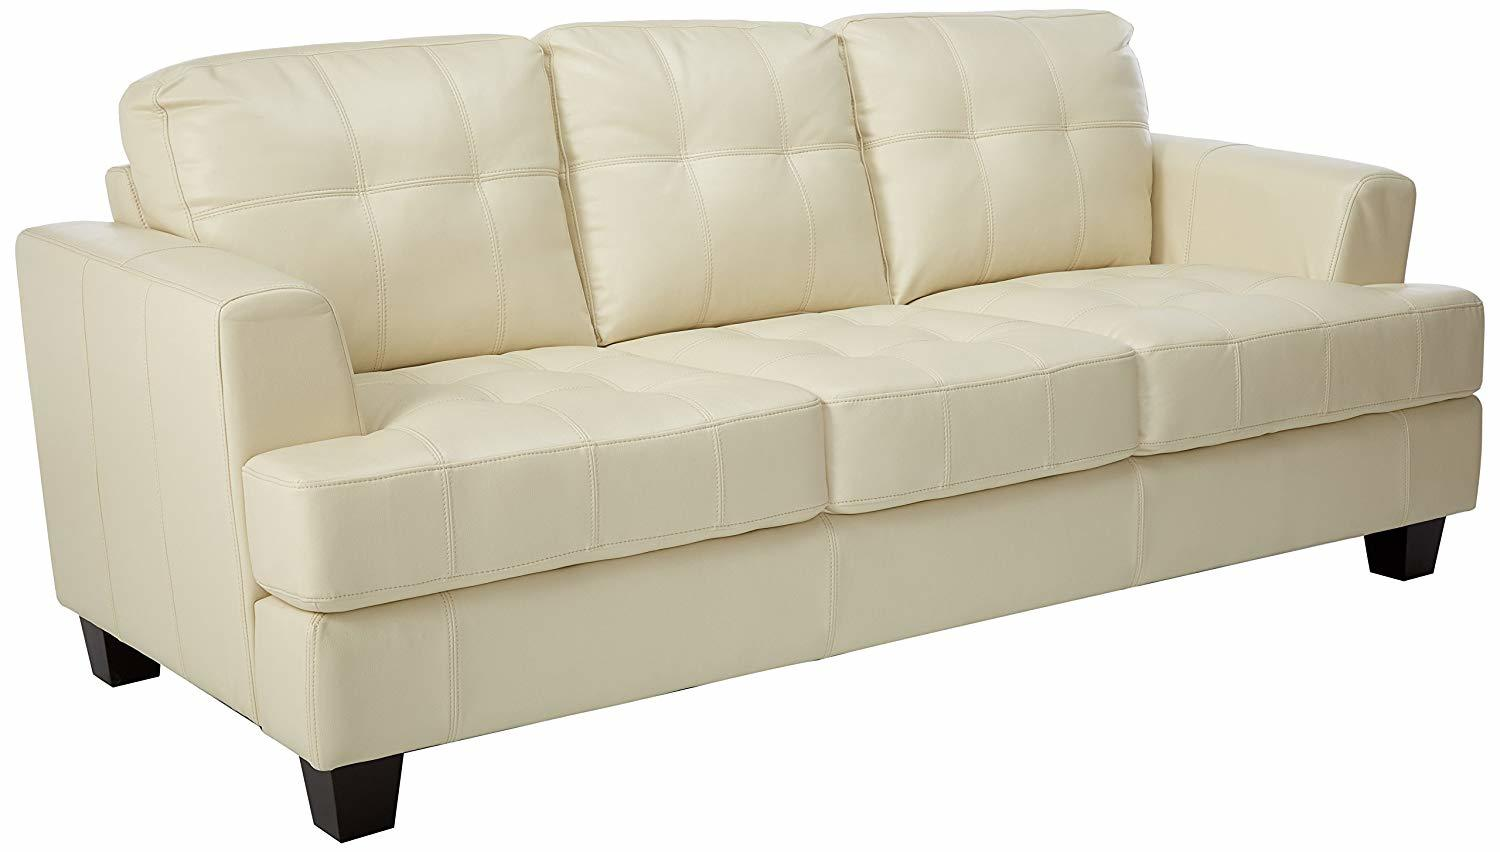 The Best Leather Couches Best Leather Sofas Best Leather